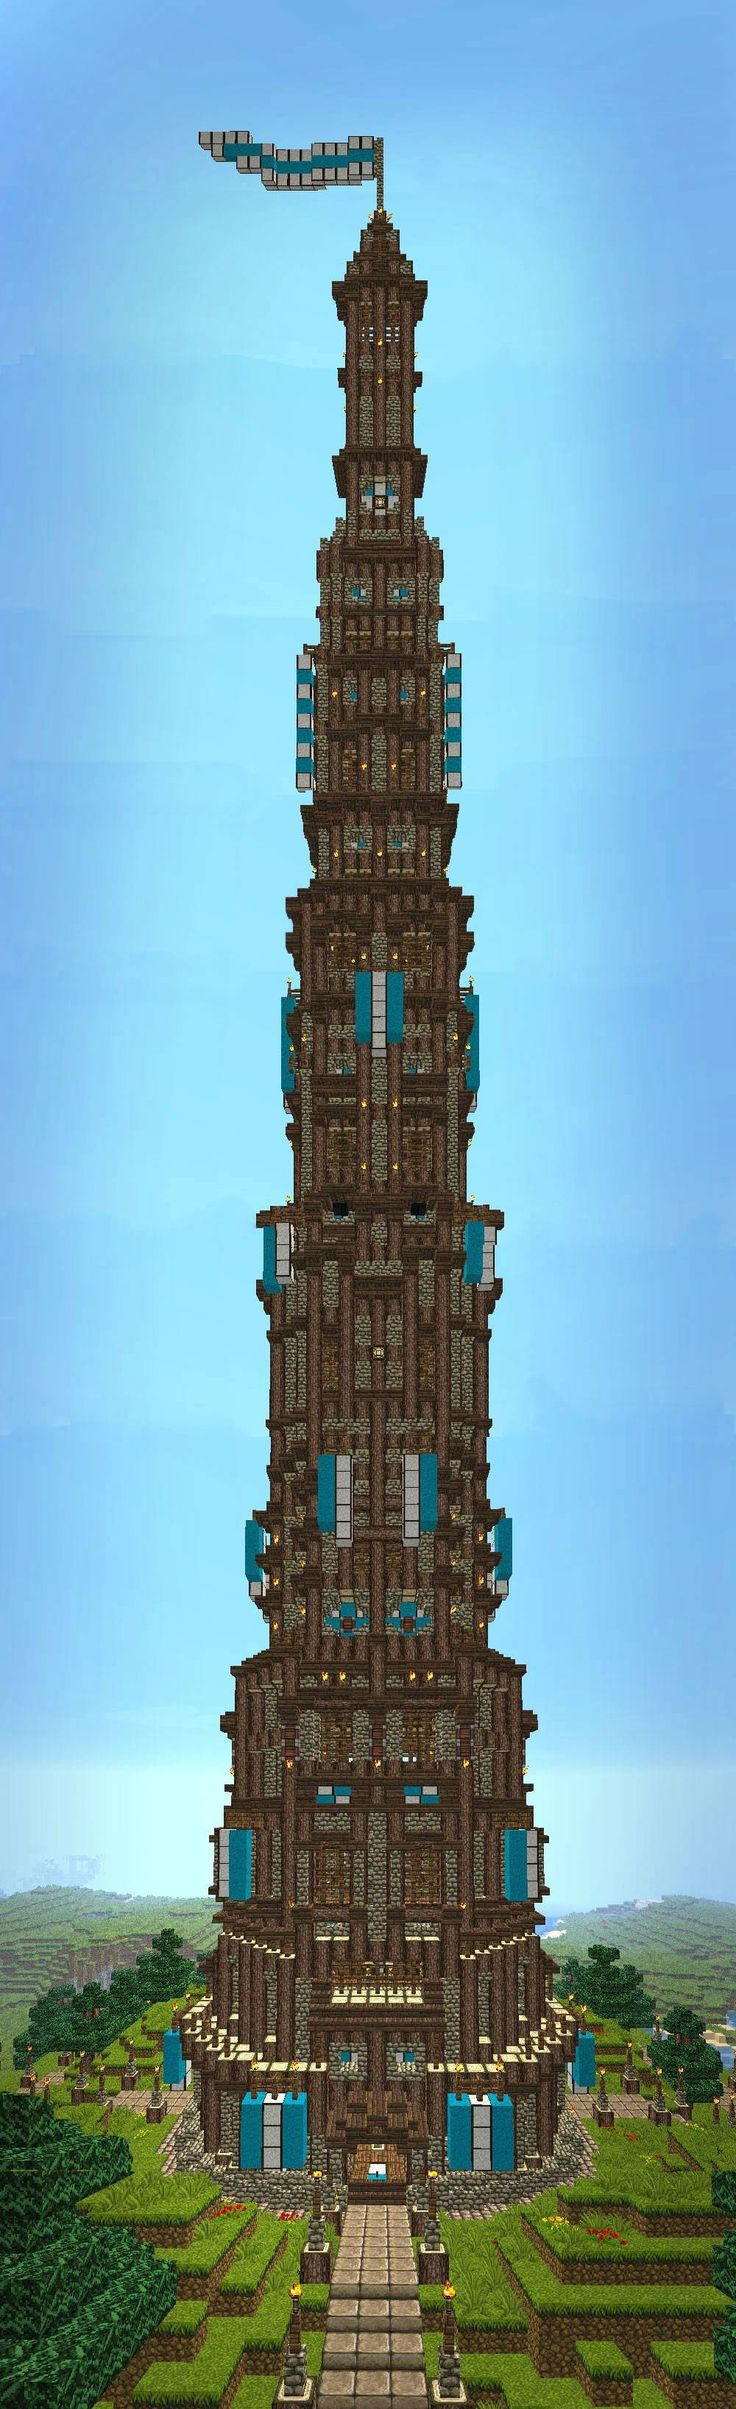 looks like a tower in minecraft